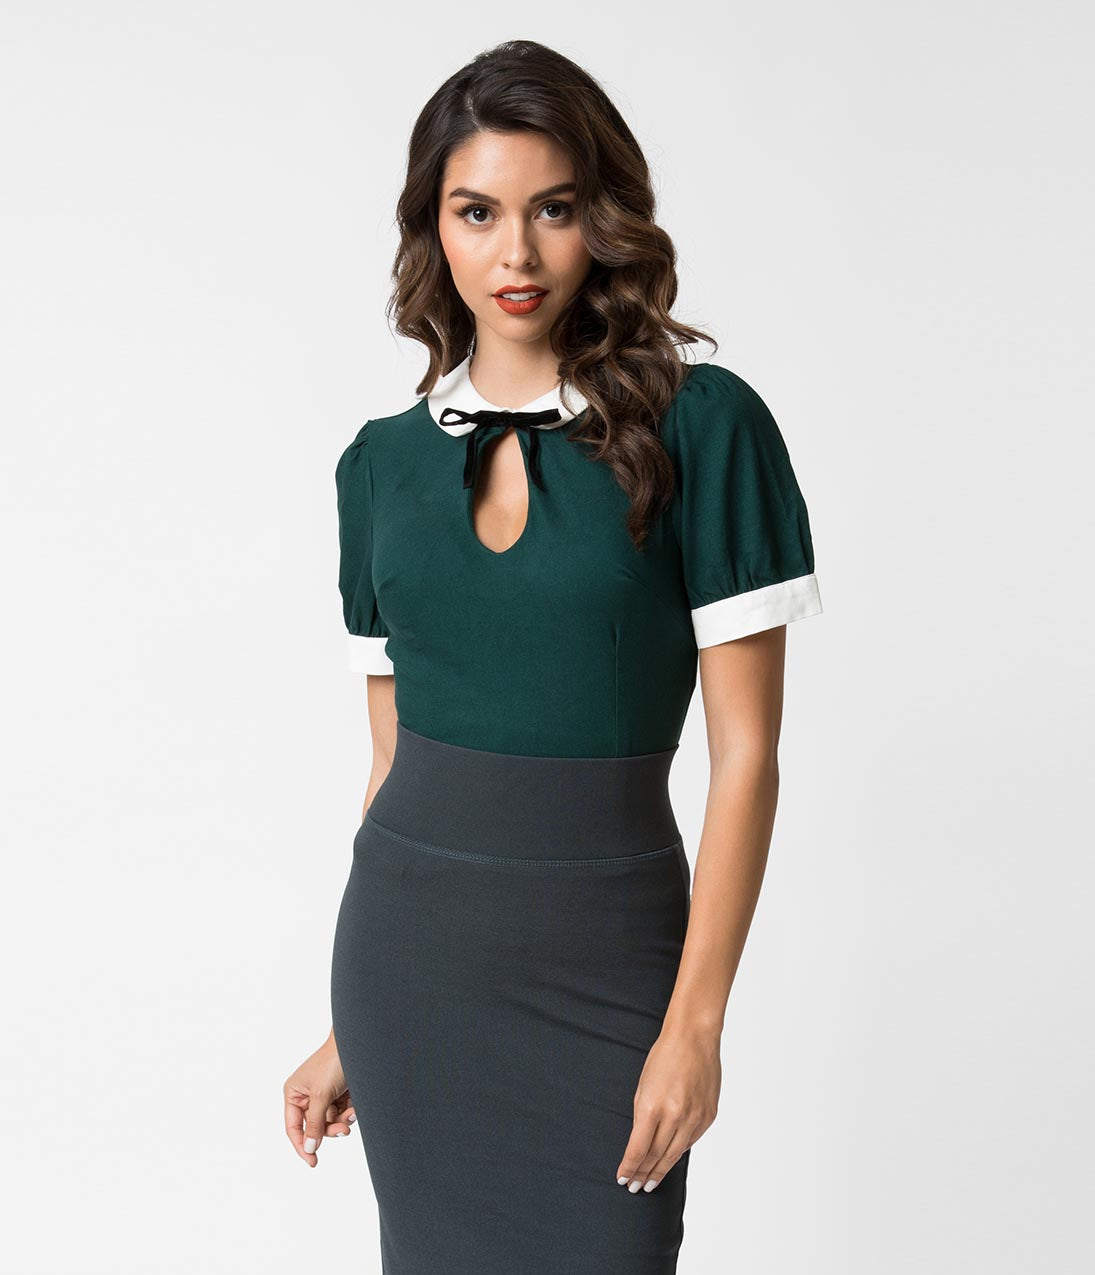 1940s Blouses and Tops Collectif 1940S Style Emerald Keyhole Short Sleeve Khloe Top $38.00 AT vintagedancer.com